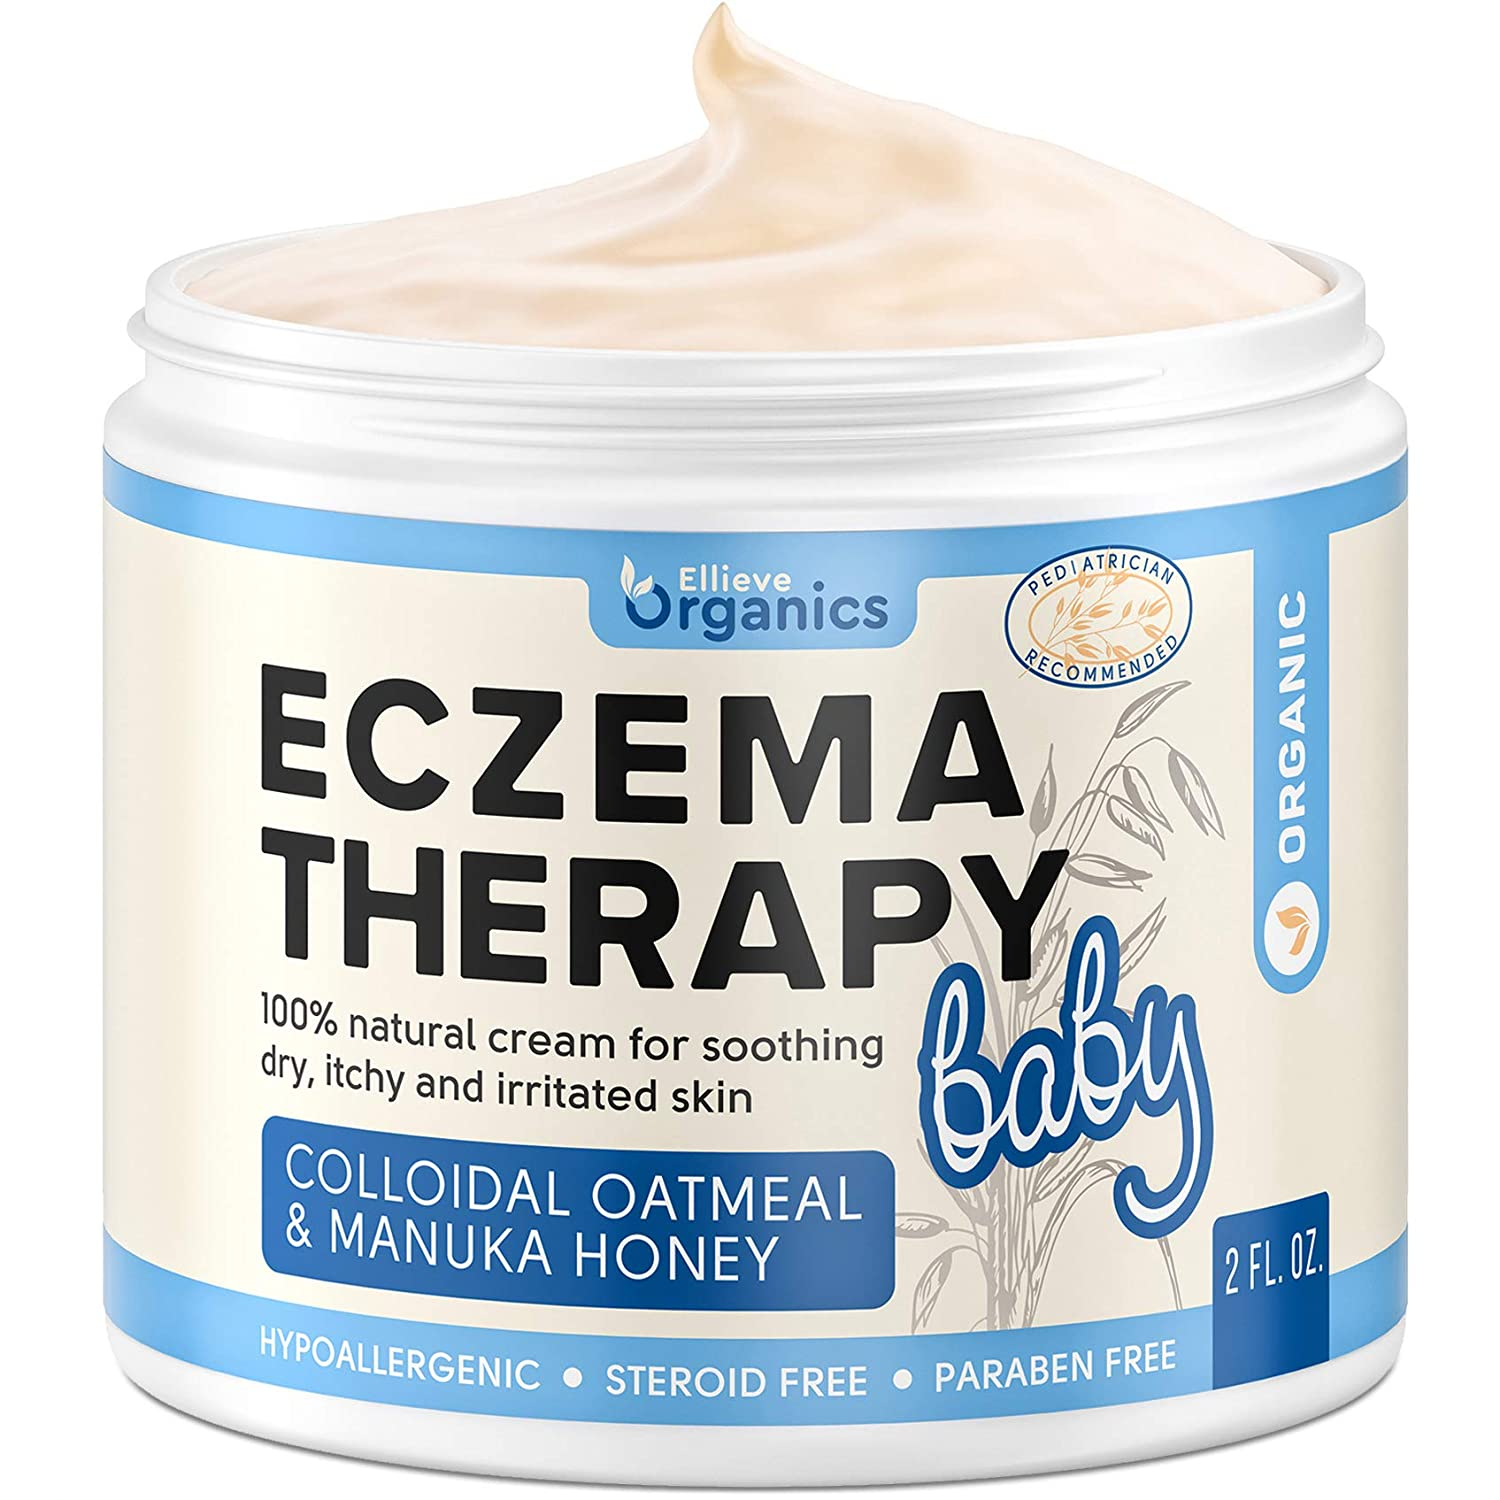 Eczema Relief Cream for Baby - Made in USA - Natural Moisturizing Cream with Colloidal Oatmeal & Potent Manunka Honey for Baby Eczema Therapy - Hypoallergenic Cream for Rash, Dry Skin & Eczema